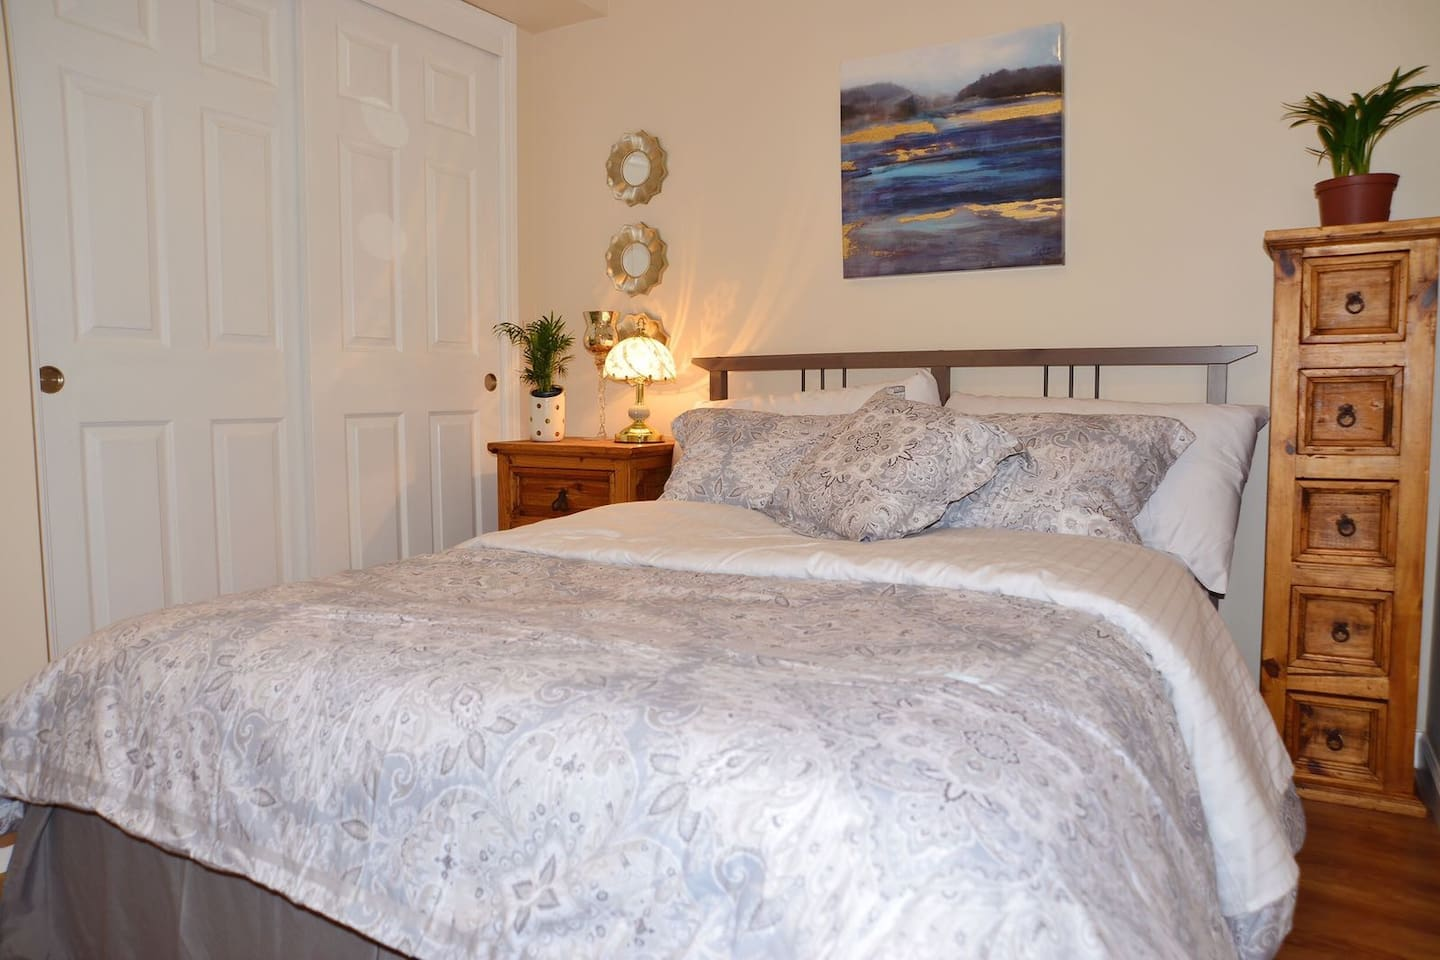 Bedroom with firm, comfortable mattress and roomy closet.